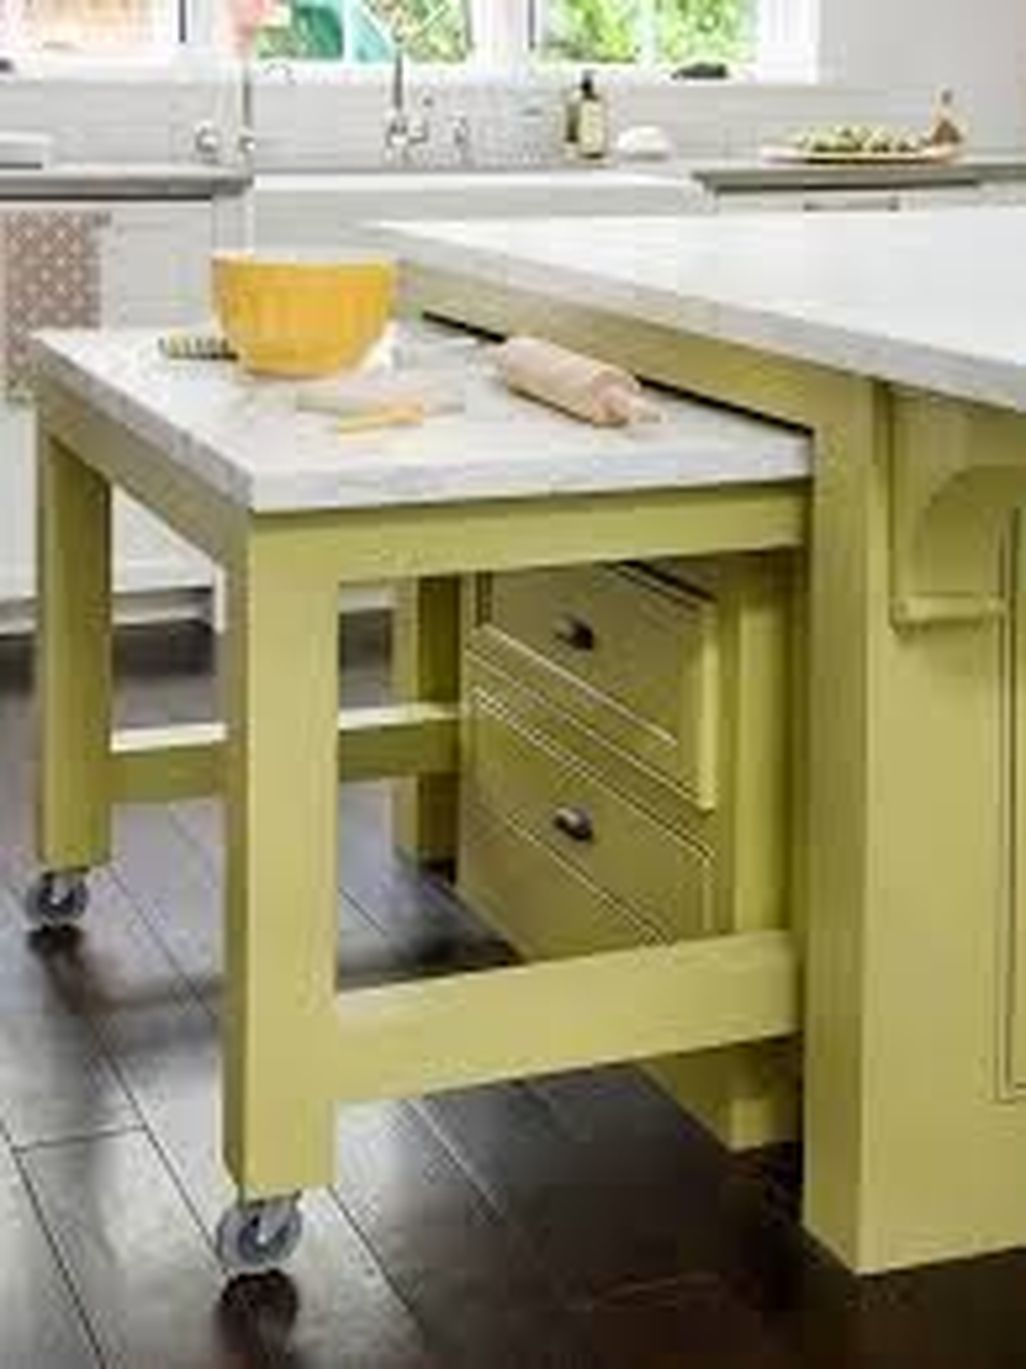 Küchendesign 2018  magnificient decor and storage ideas for tiny kitchens  cute